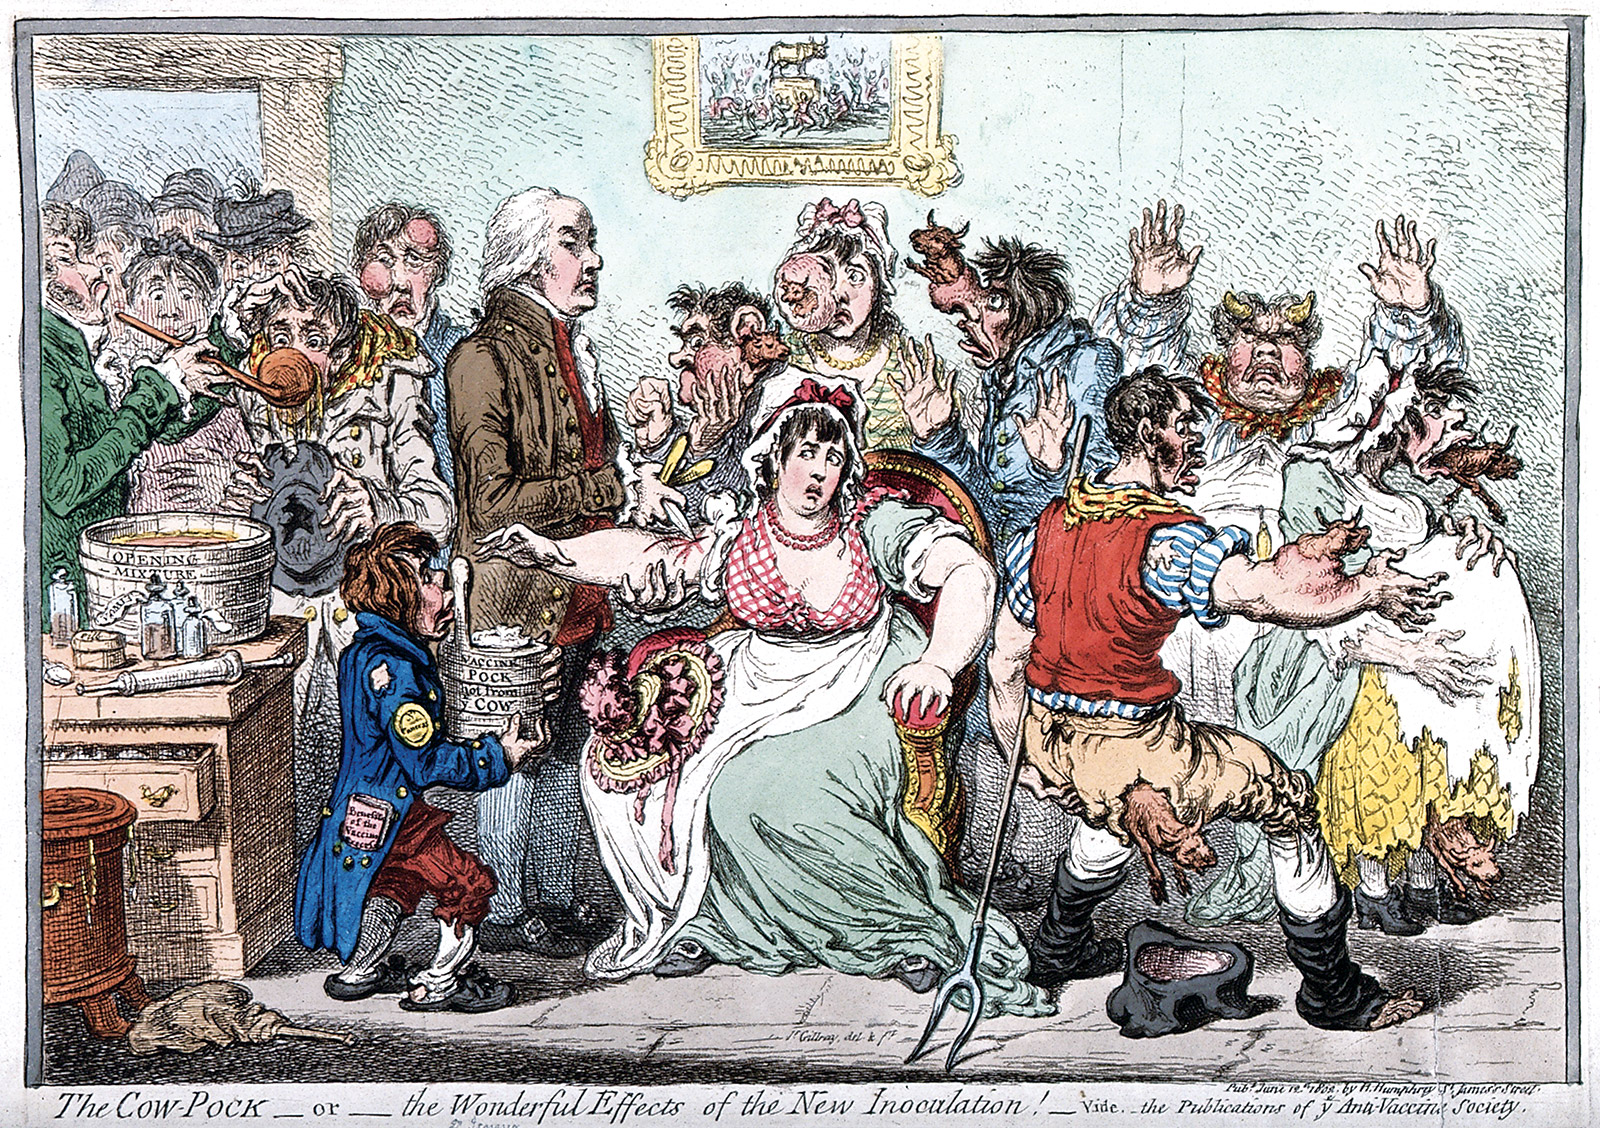 Caricature of Edward Jenner  inoculating patients by James Gillray, 1802.